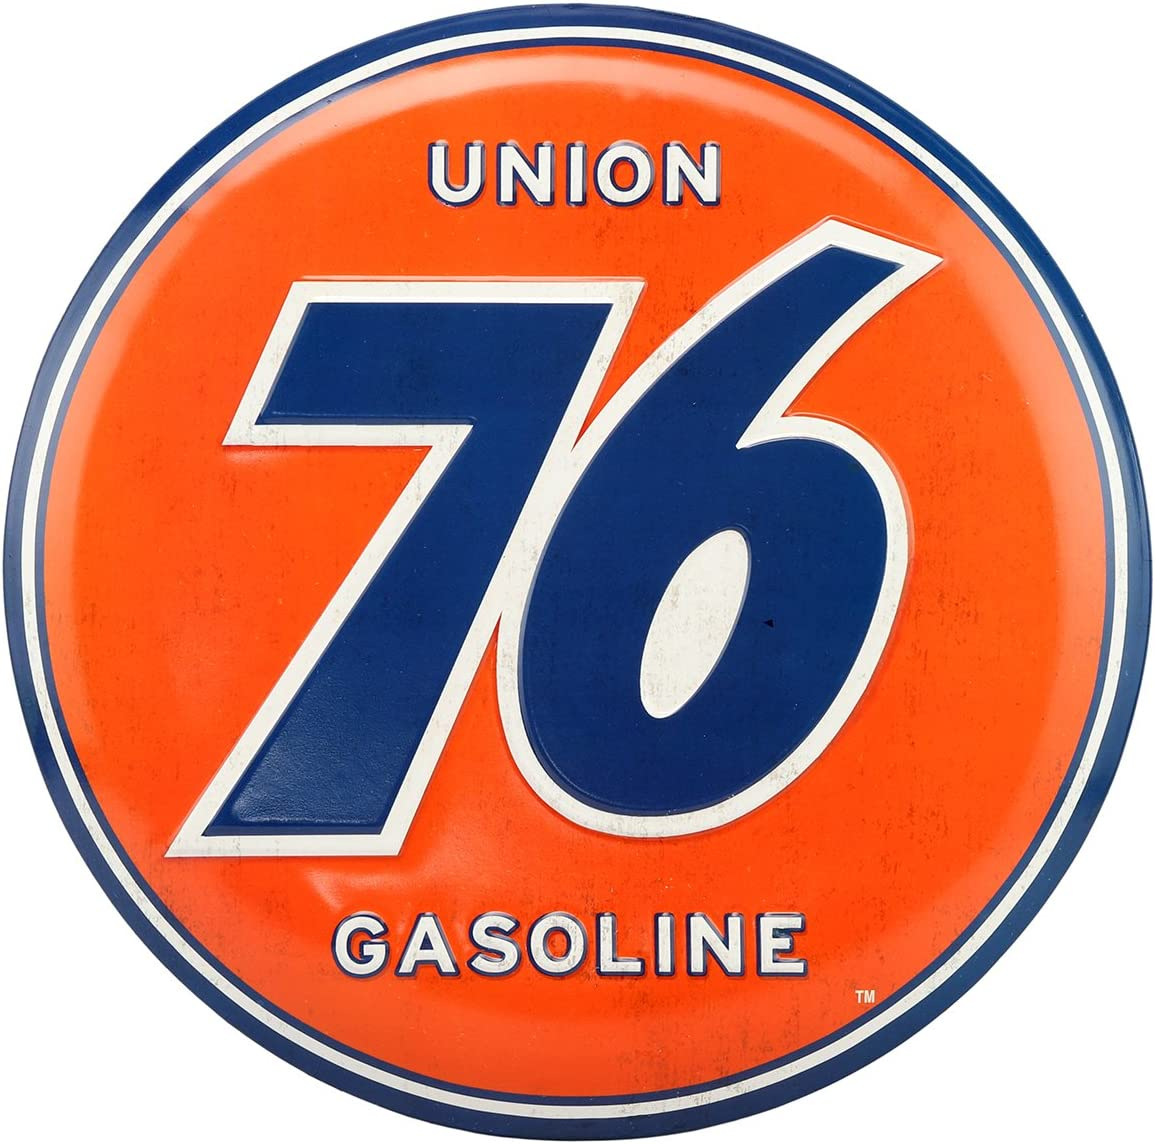 Open Road Brands Union 76 Embossed Blue and Orange Metal Button Wall Art Sign - an Officially Licensed Product Great Addition to Add What You Love to Your Home/Garage Décor